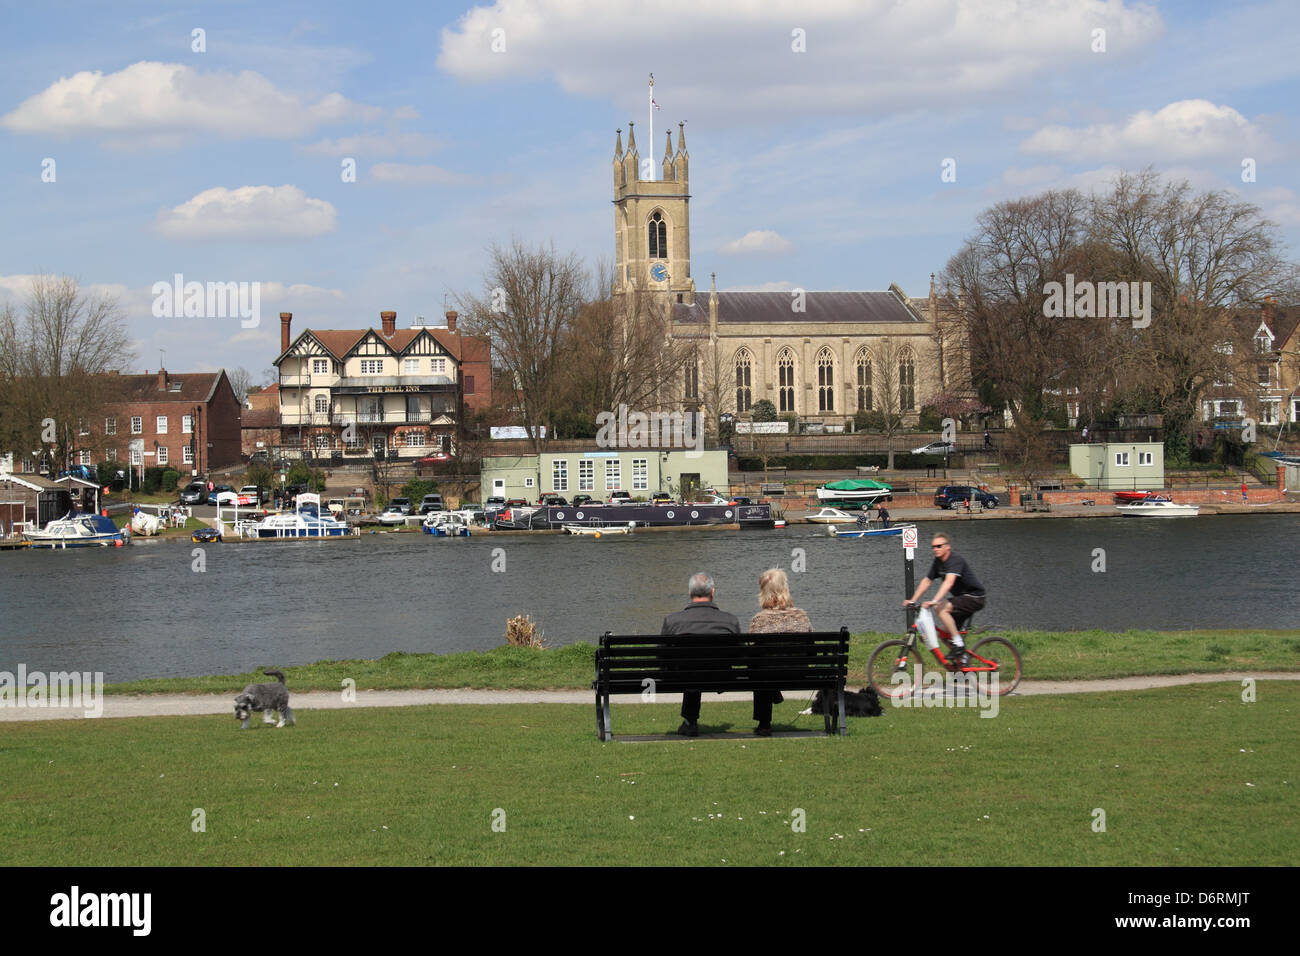 Bell Inn and St Mary's church, Hampton, East Molesey, Surrey, England, Great Britain, United Kingdom, UK, Europe Stock Photo